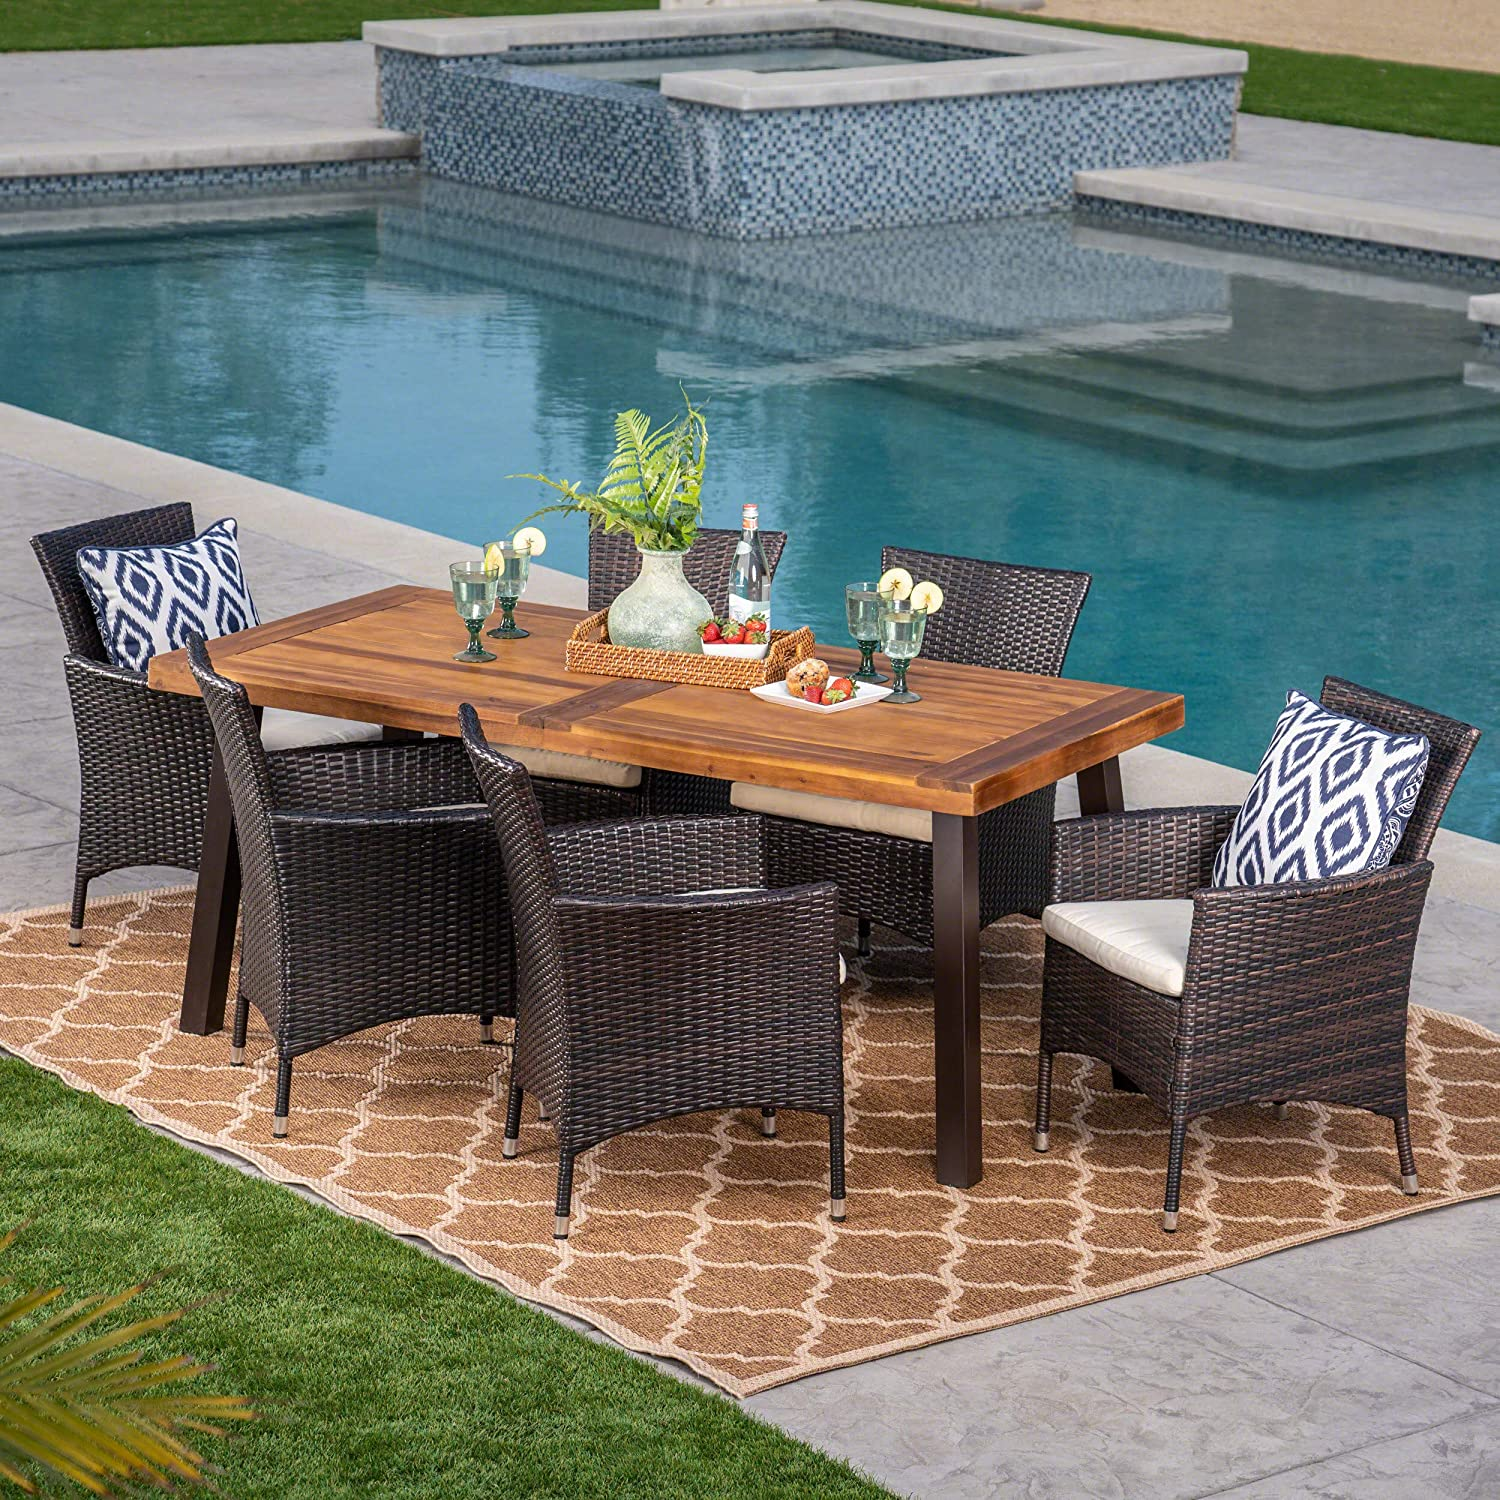 Christopher Knight Home 304312 Randy | Outdoor 7-Piece Acacia Wood and Wicker Dining Set with Cushions | Teak Finish | in Multibrown/Beige, Rustic Metal